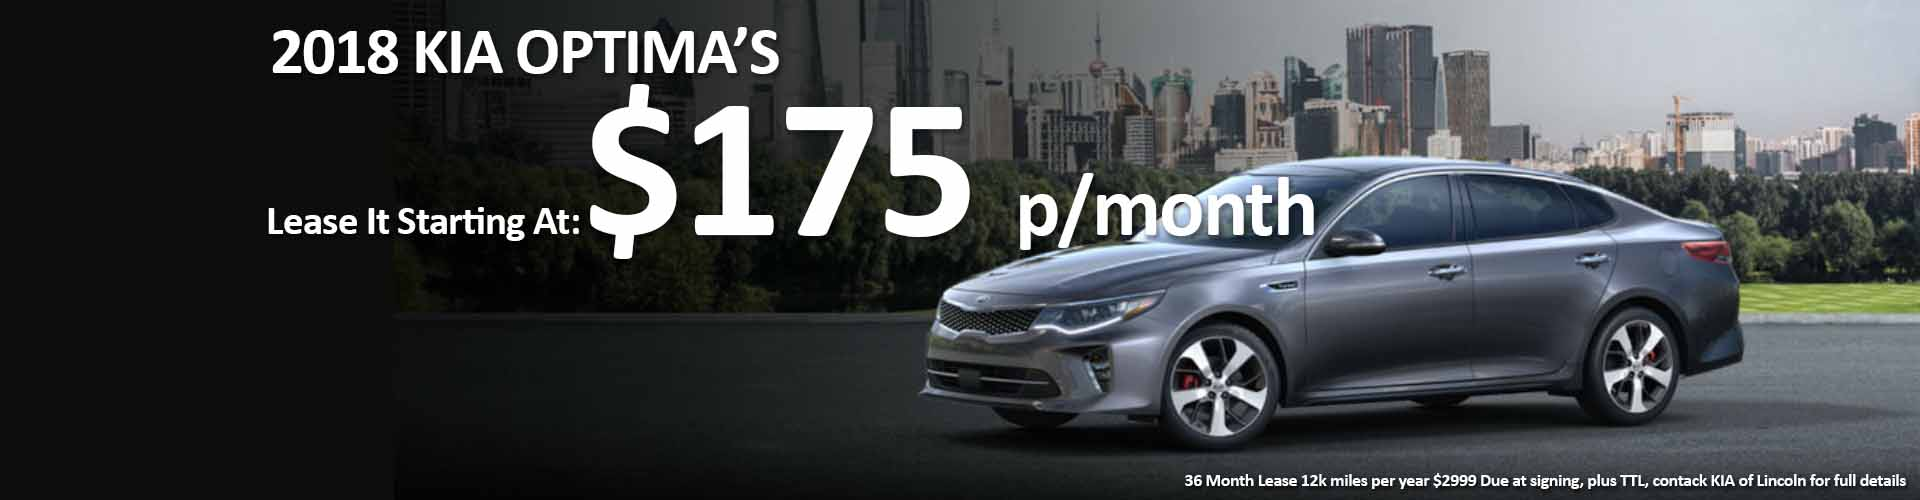 2018 KIA OPTIMA lease special